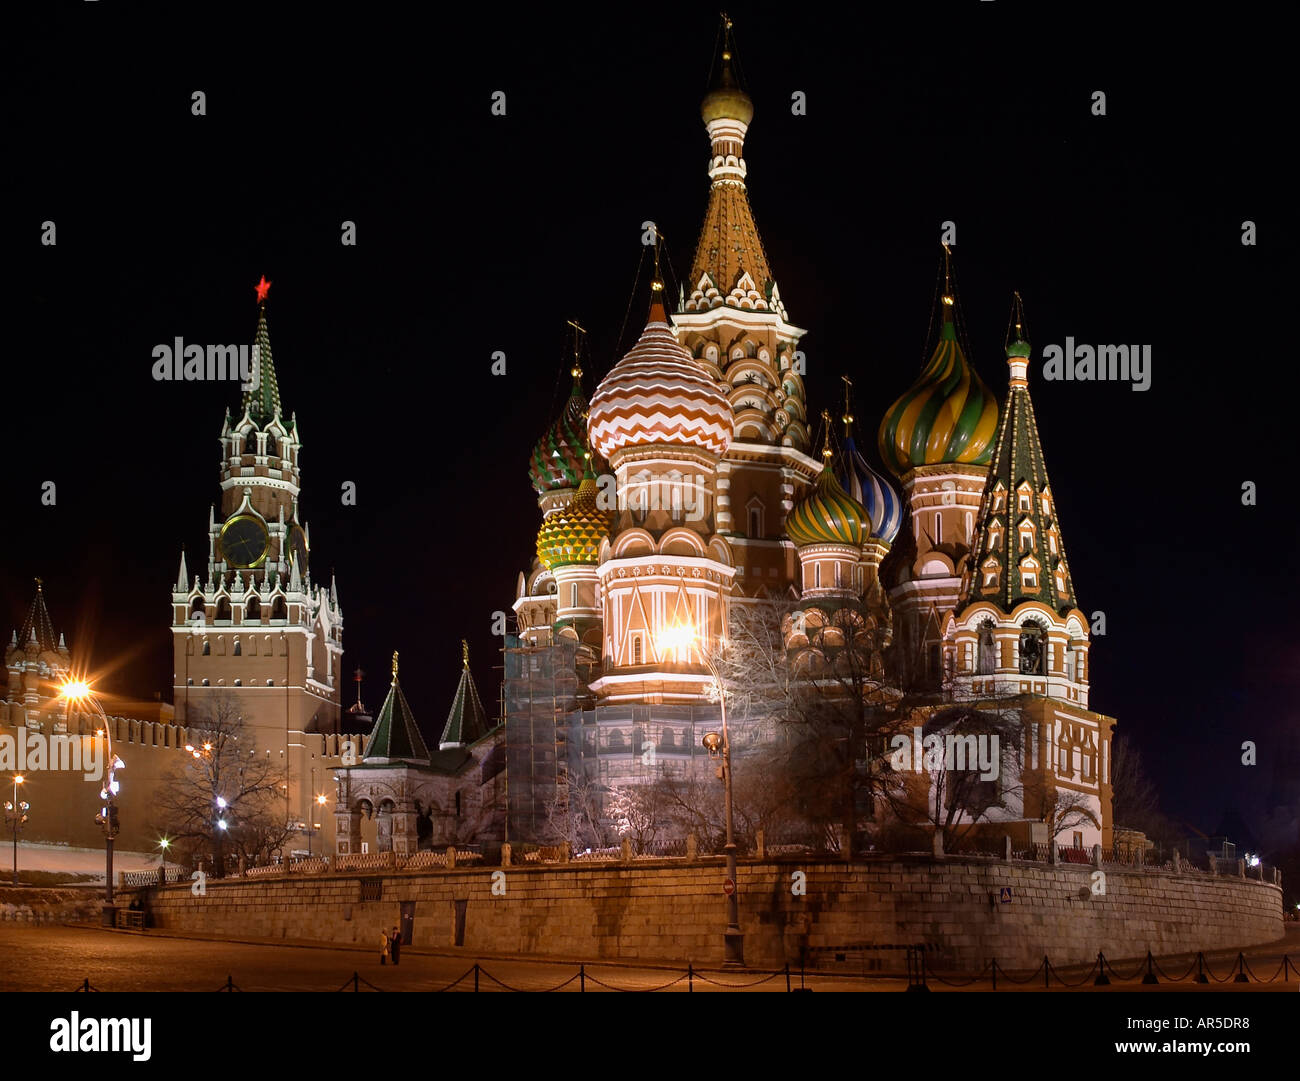 A general view of Saint Basils Cathedral and Kremlin pictured in the city of Moscow at night - Stock Image